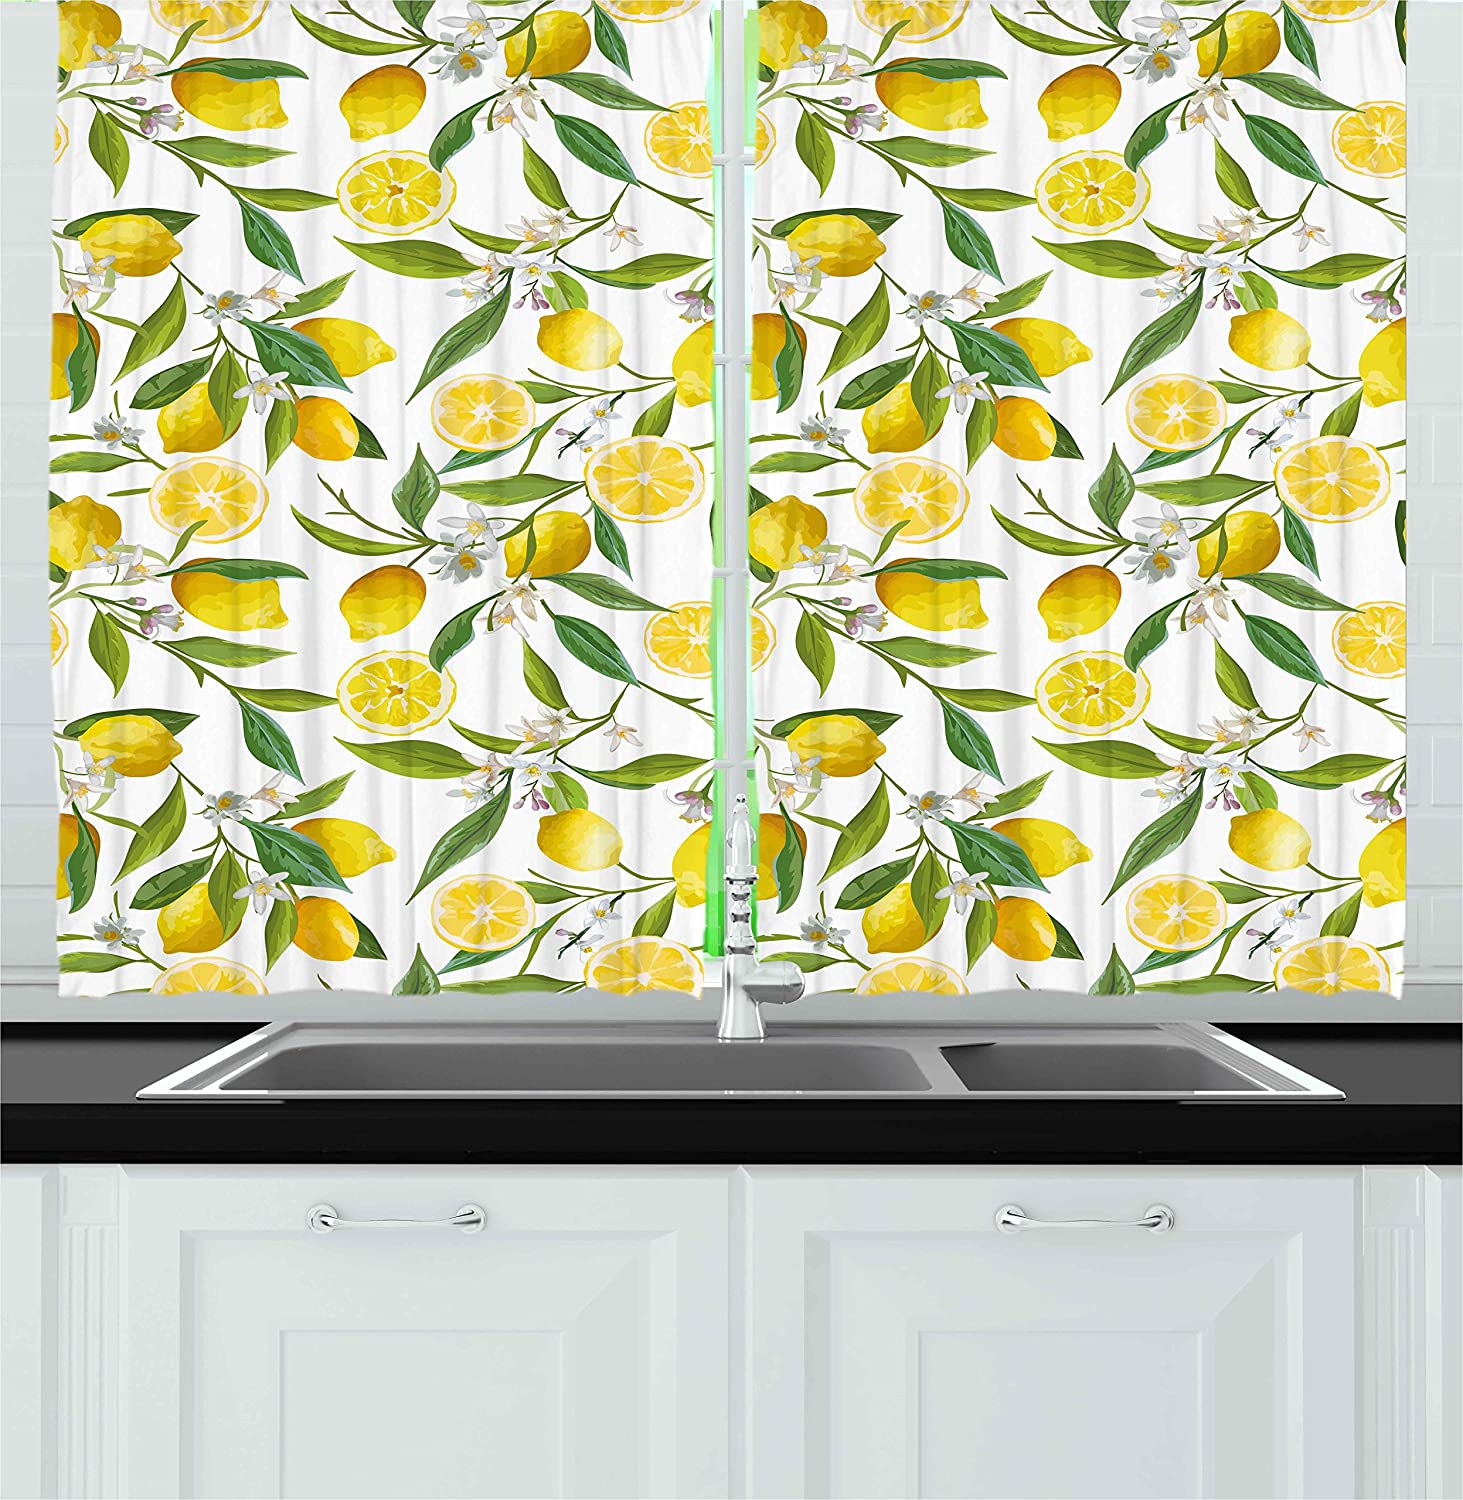 Ambesonne Nature Kitchen Curtains, Exotic Lemon Tree Branches Yummy Delicious Kitchen Gardening Design, Window Drapes 2 Panels Set for Kitchen Cafe, 55 W X 39 L inches, Fern Green Yellow White